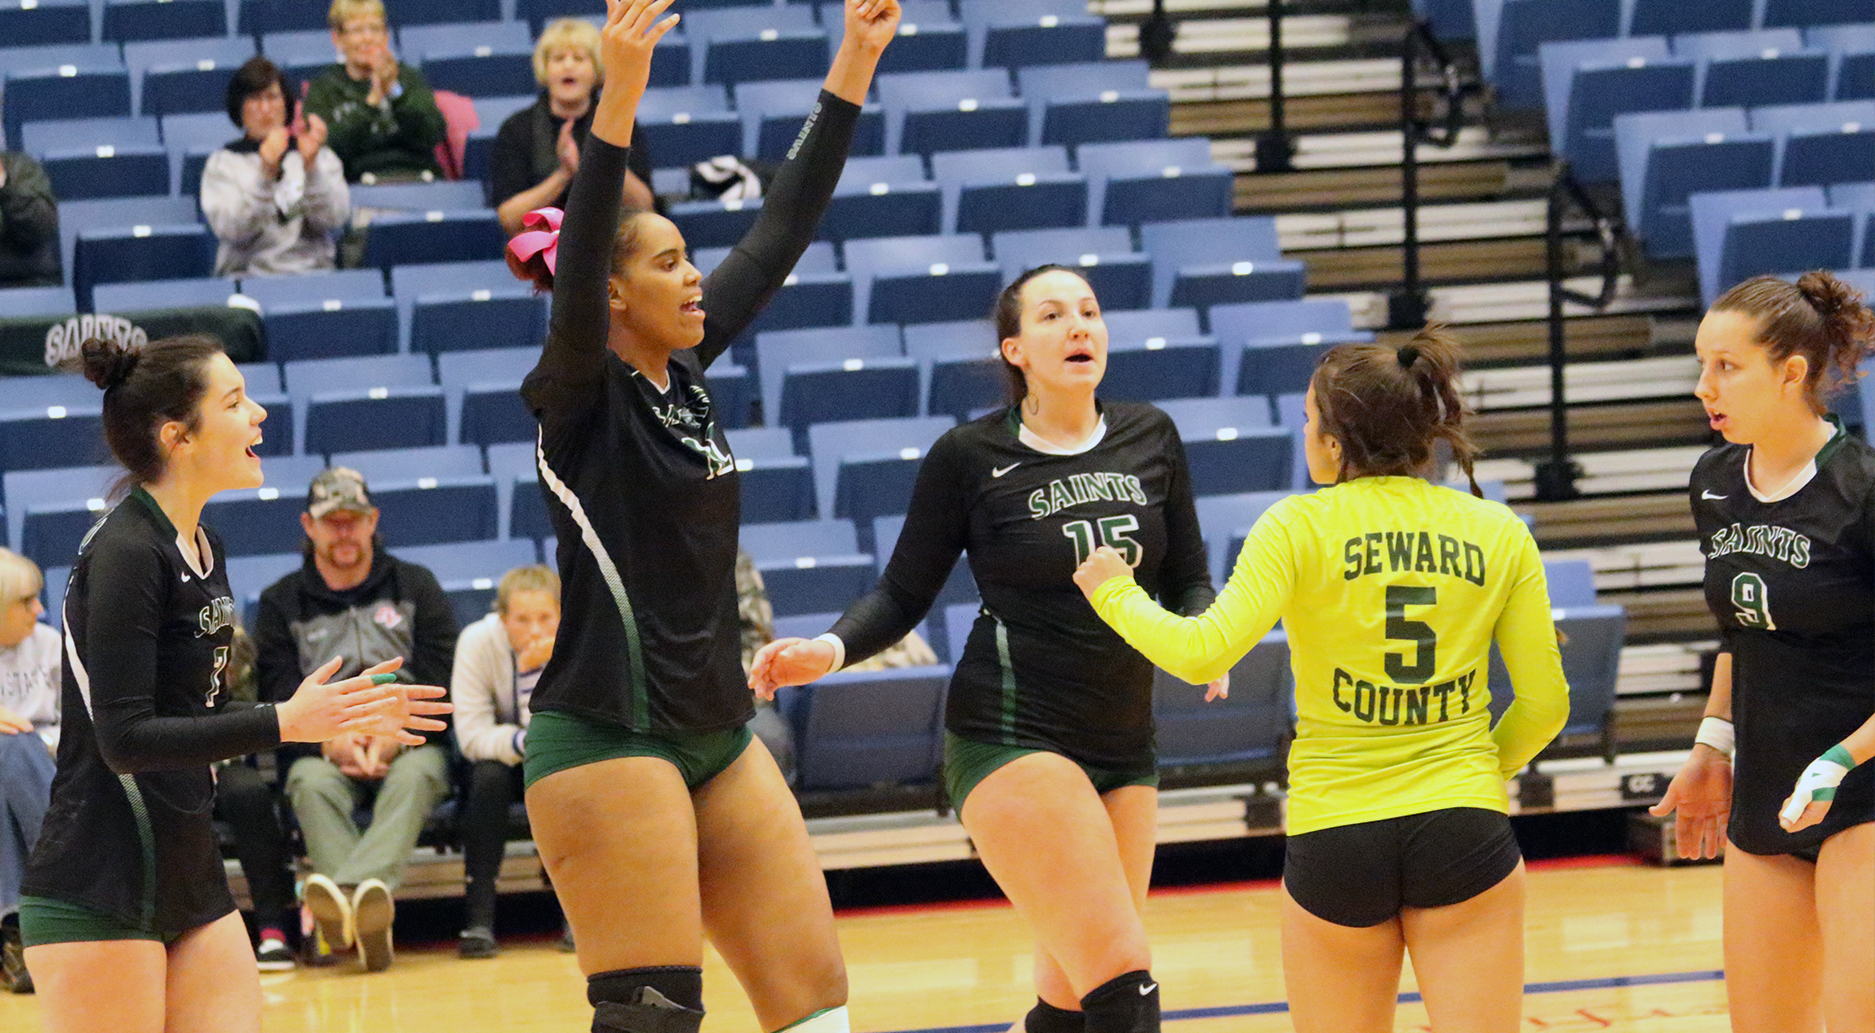 Lady Saints Place 4th At NJCAA National Tournament